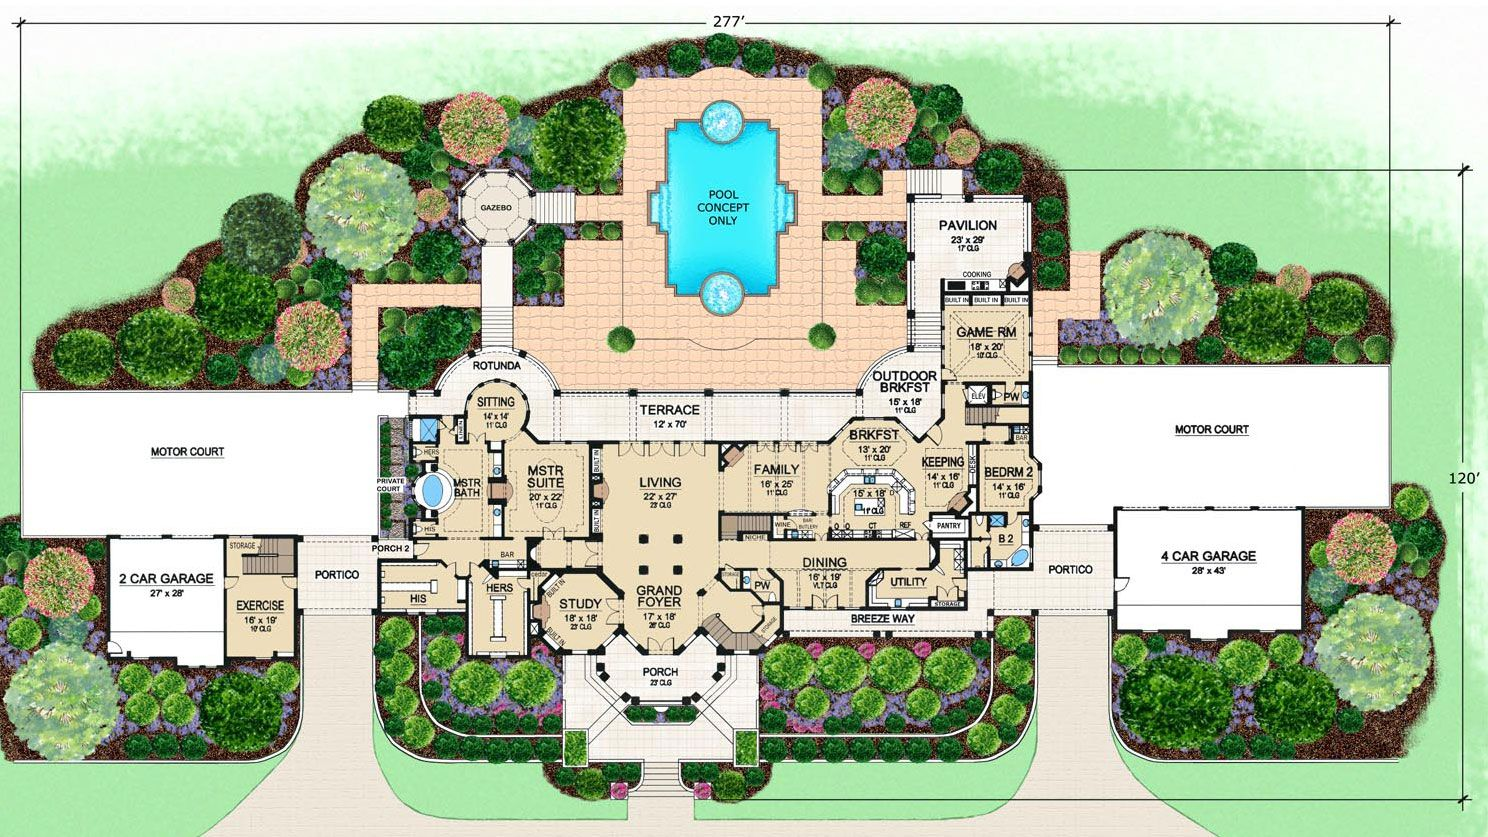 Sexy House Plans Mansion : Ultra Luxury House Plans T Lovely Floor Designs  Modern Home House Plans Mini Mansion House Plans Mansions Luxury